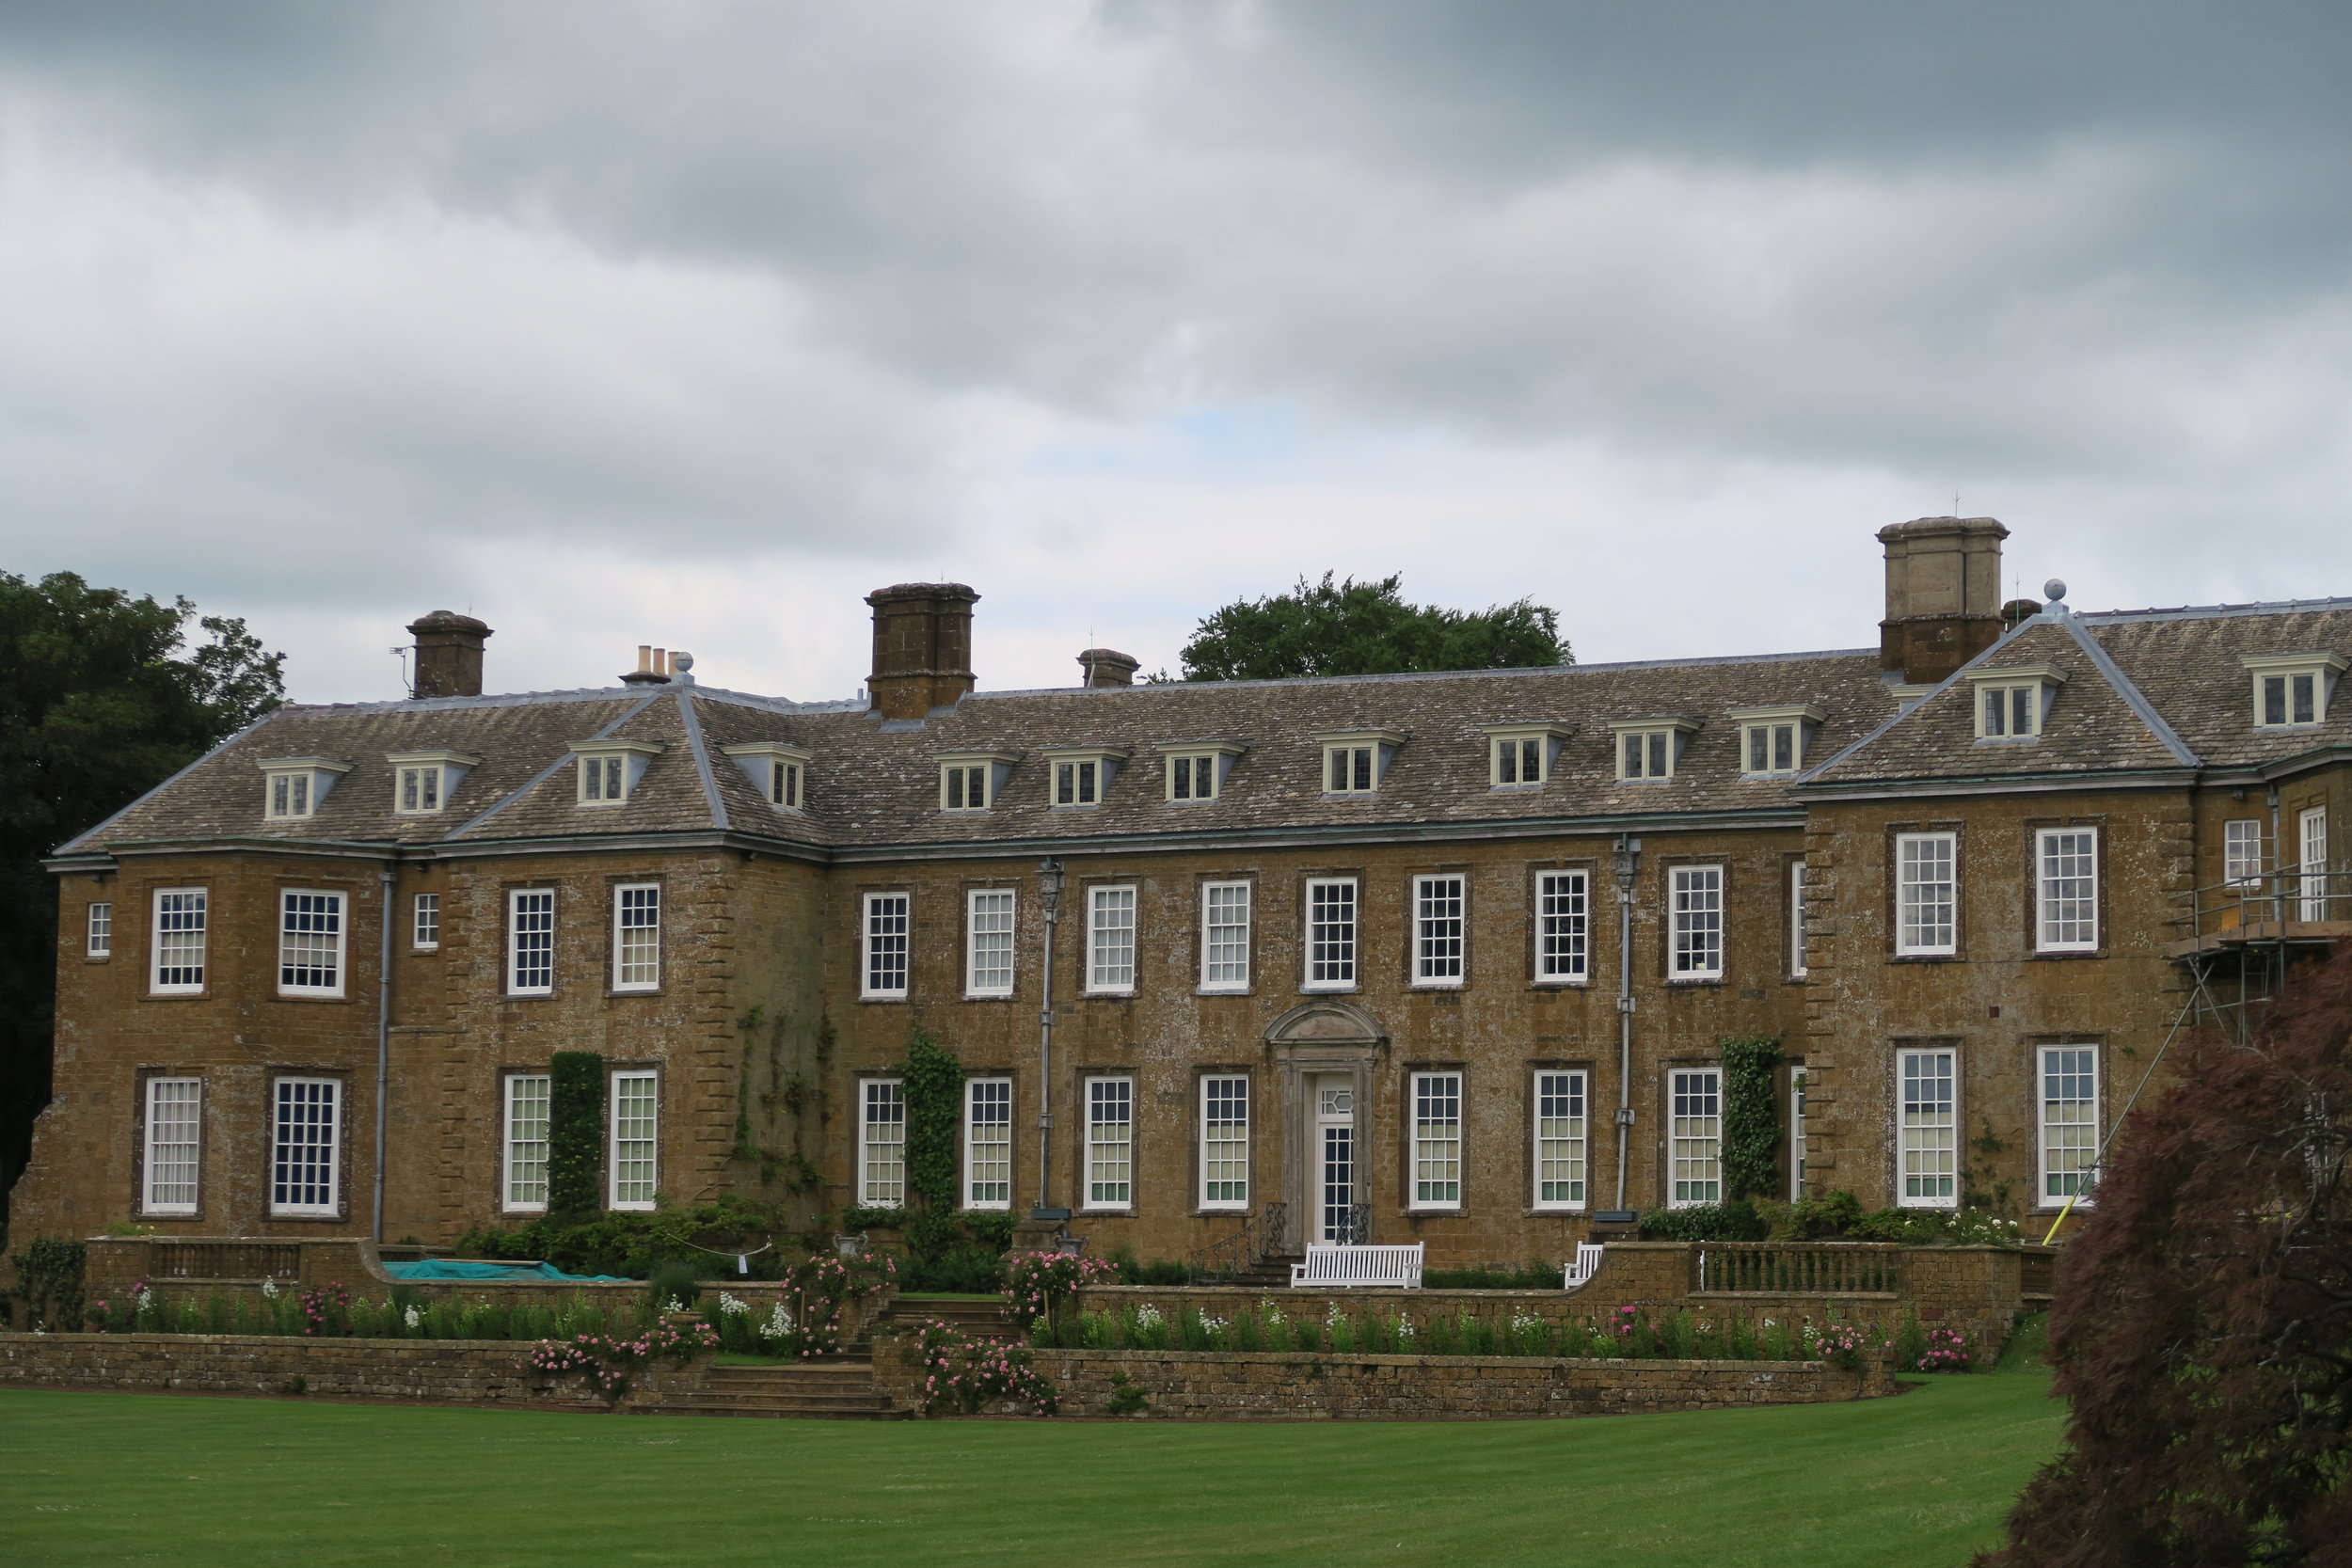 Upton Hall, where the gardens were dug up for vegetables during the war.